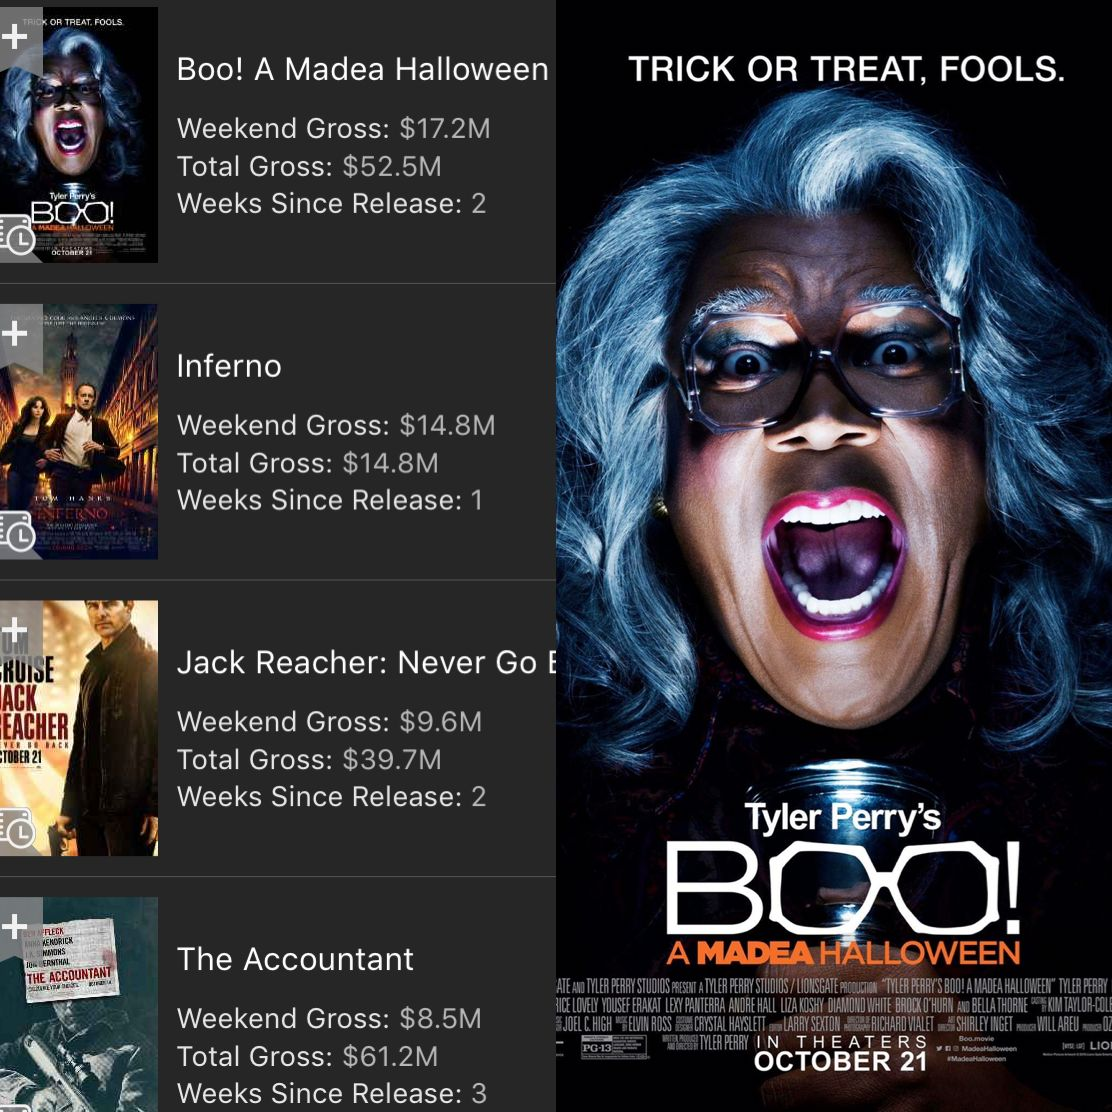 BOO! A Madea Halloween is the #1 Movie in America for the 2nd week ...